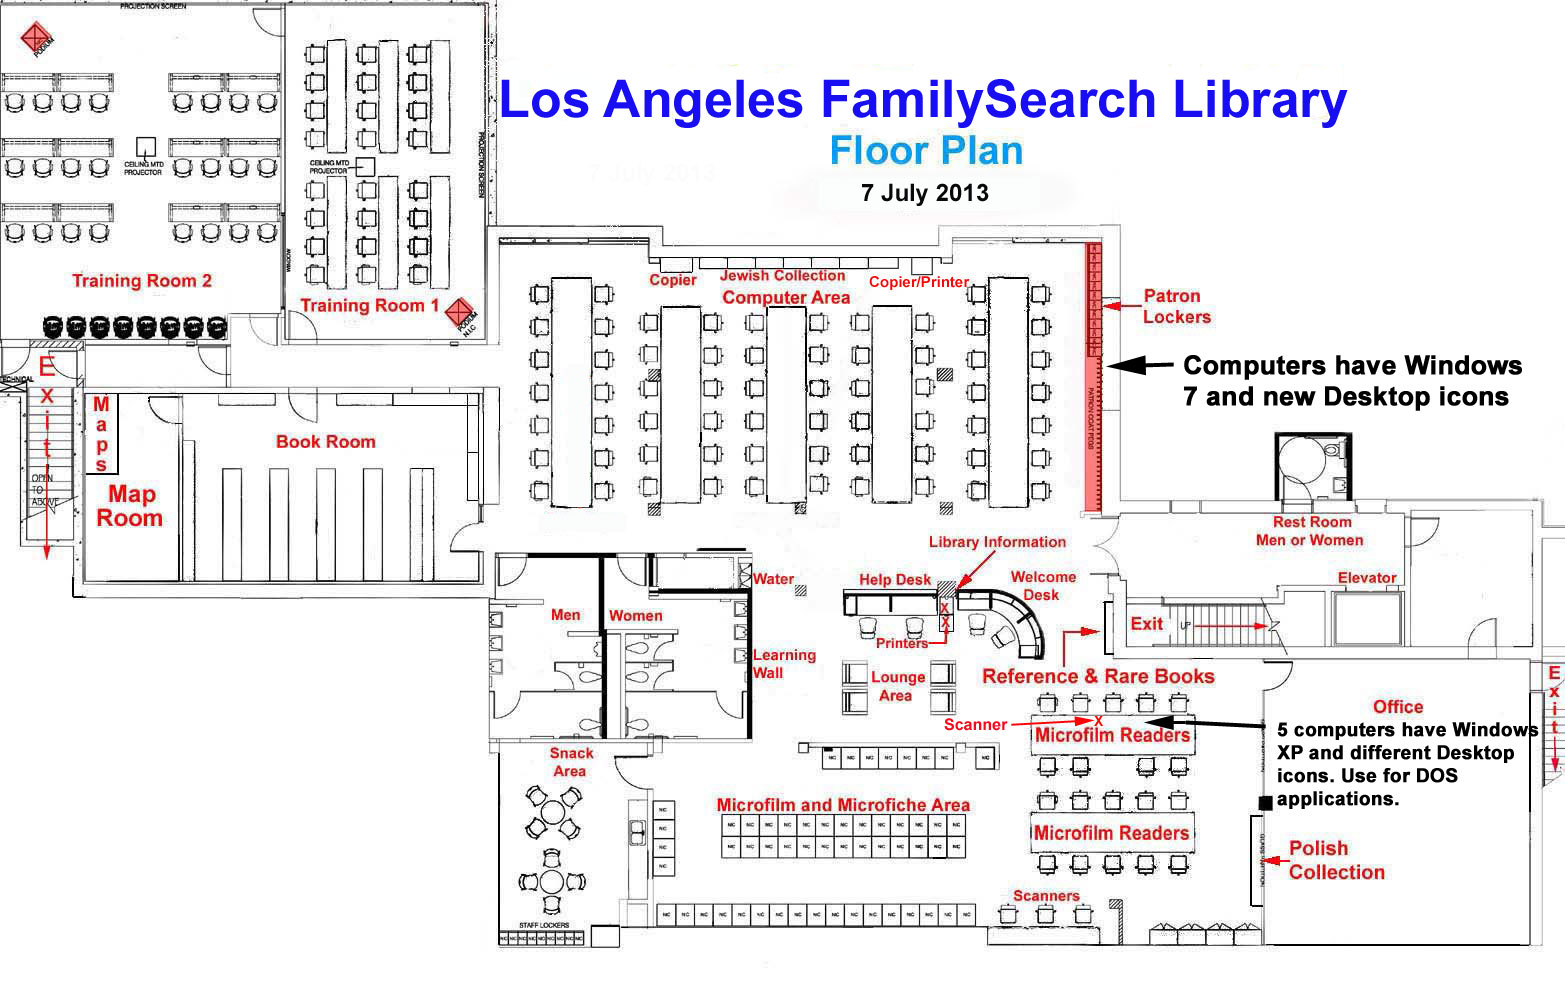 los angeles familysearch library floor plan floor plan main room